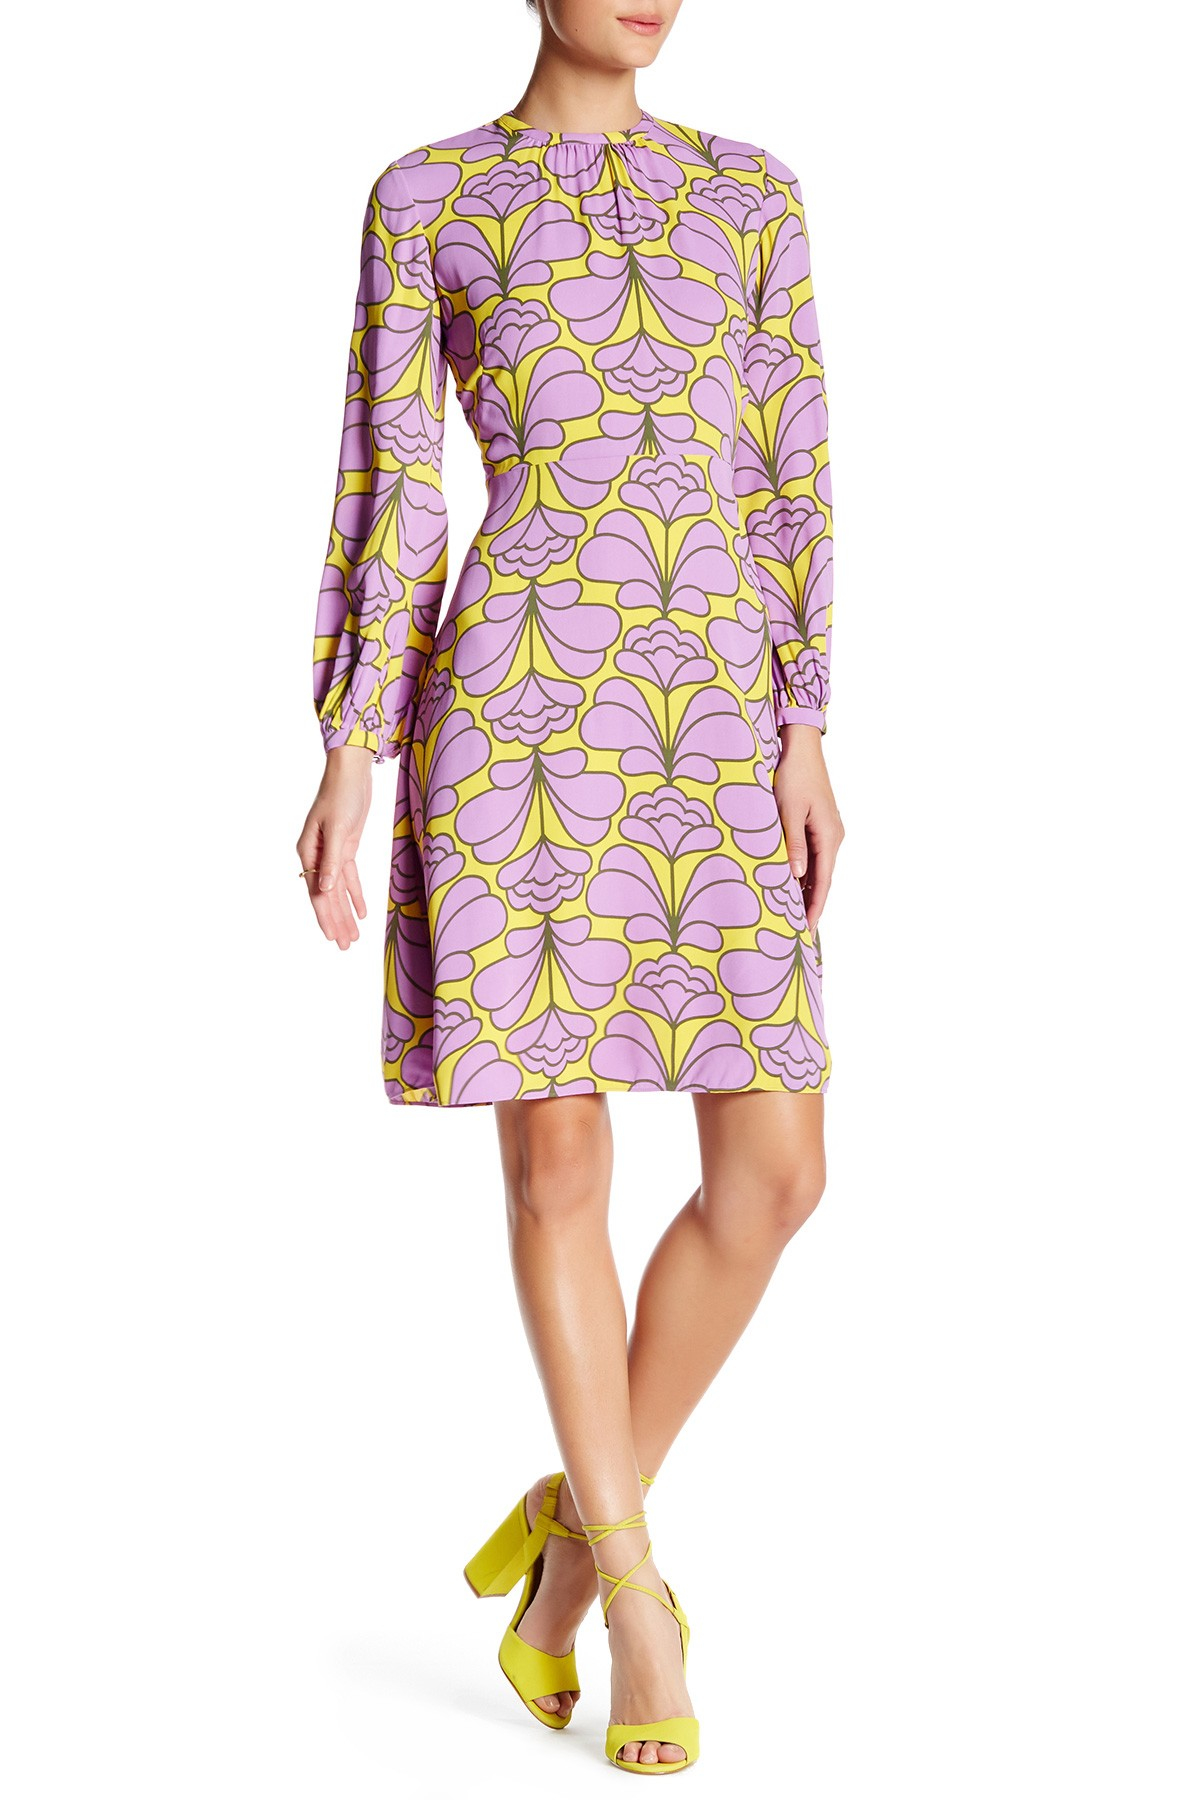 Free shipping and returns on dresses for women at appzmotorwn.cf Browse bridesmaids, cocktail & party, maxi, vacation, wedding guest and more in the latest colors and prints. Shop by length, style, color and more from brands like Eliza J, Topshop, Leith, Gal Meets Glam, & Free People.